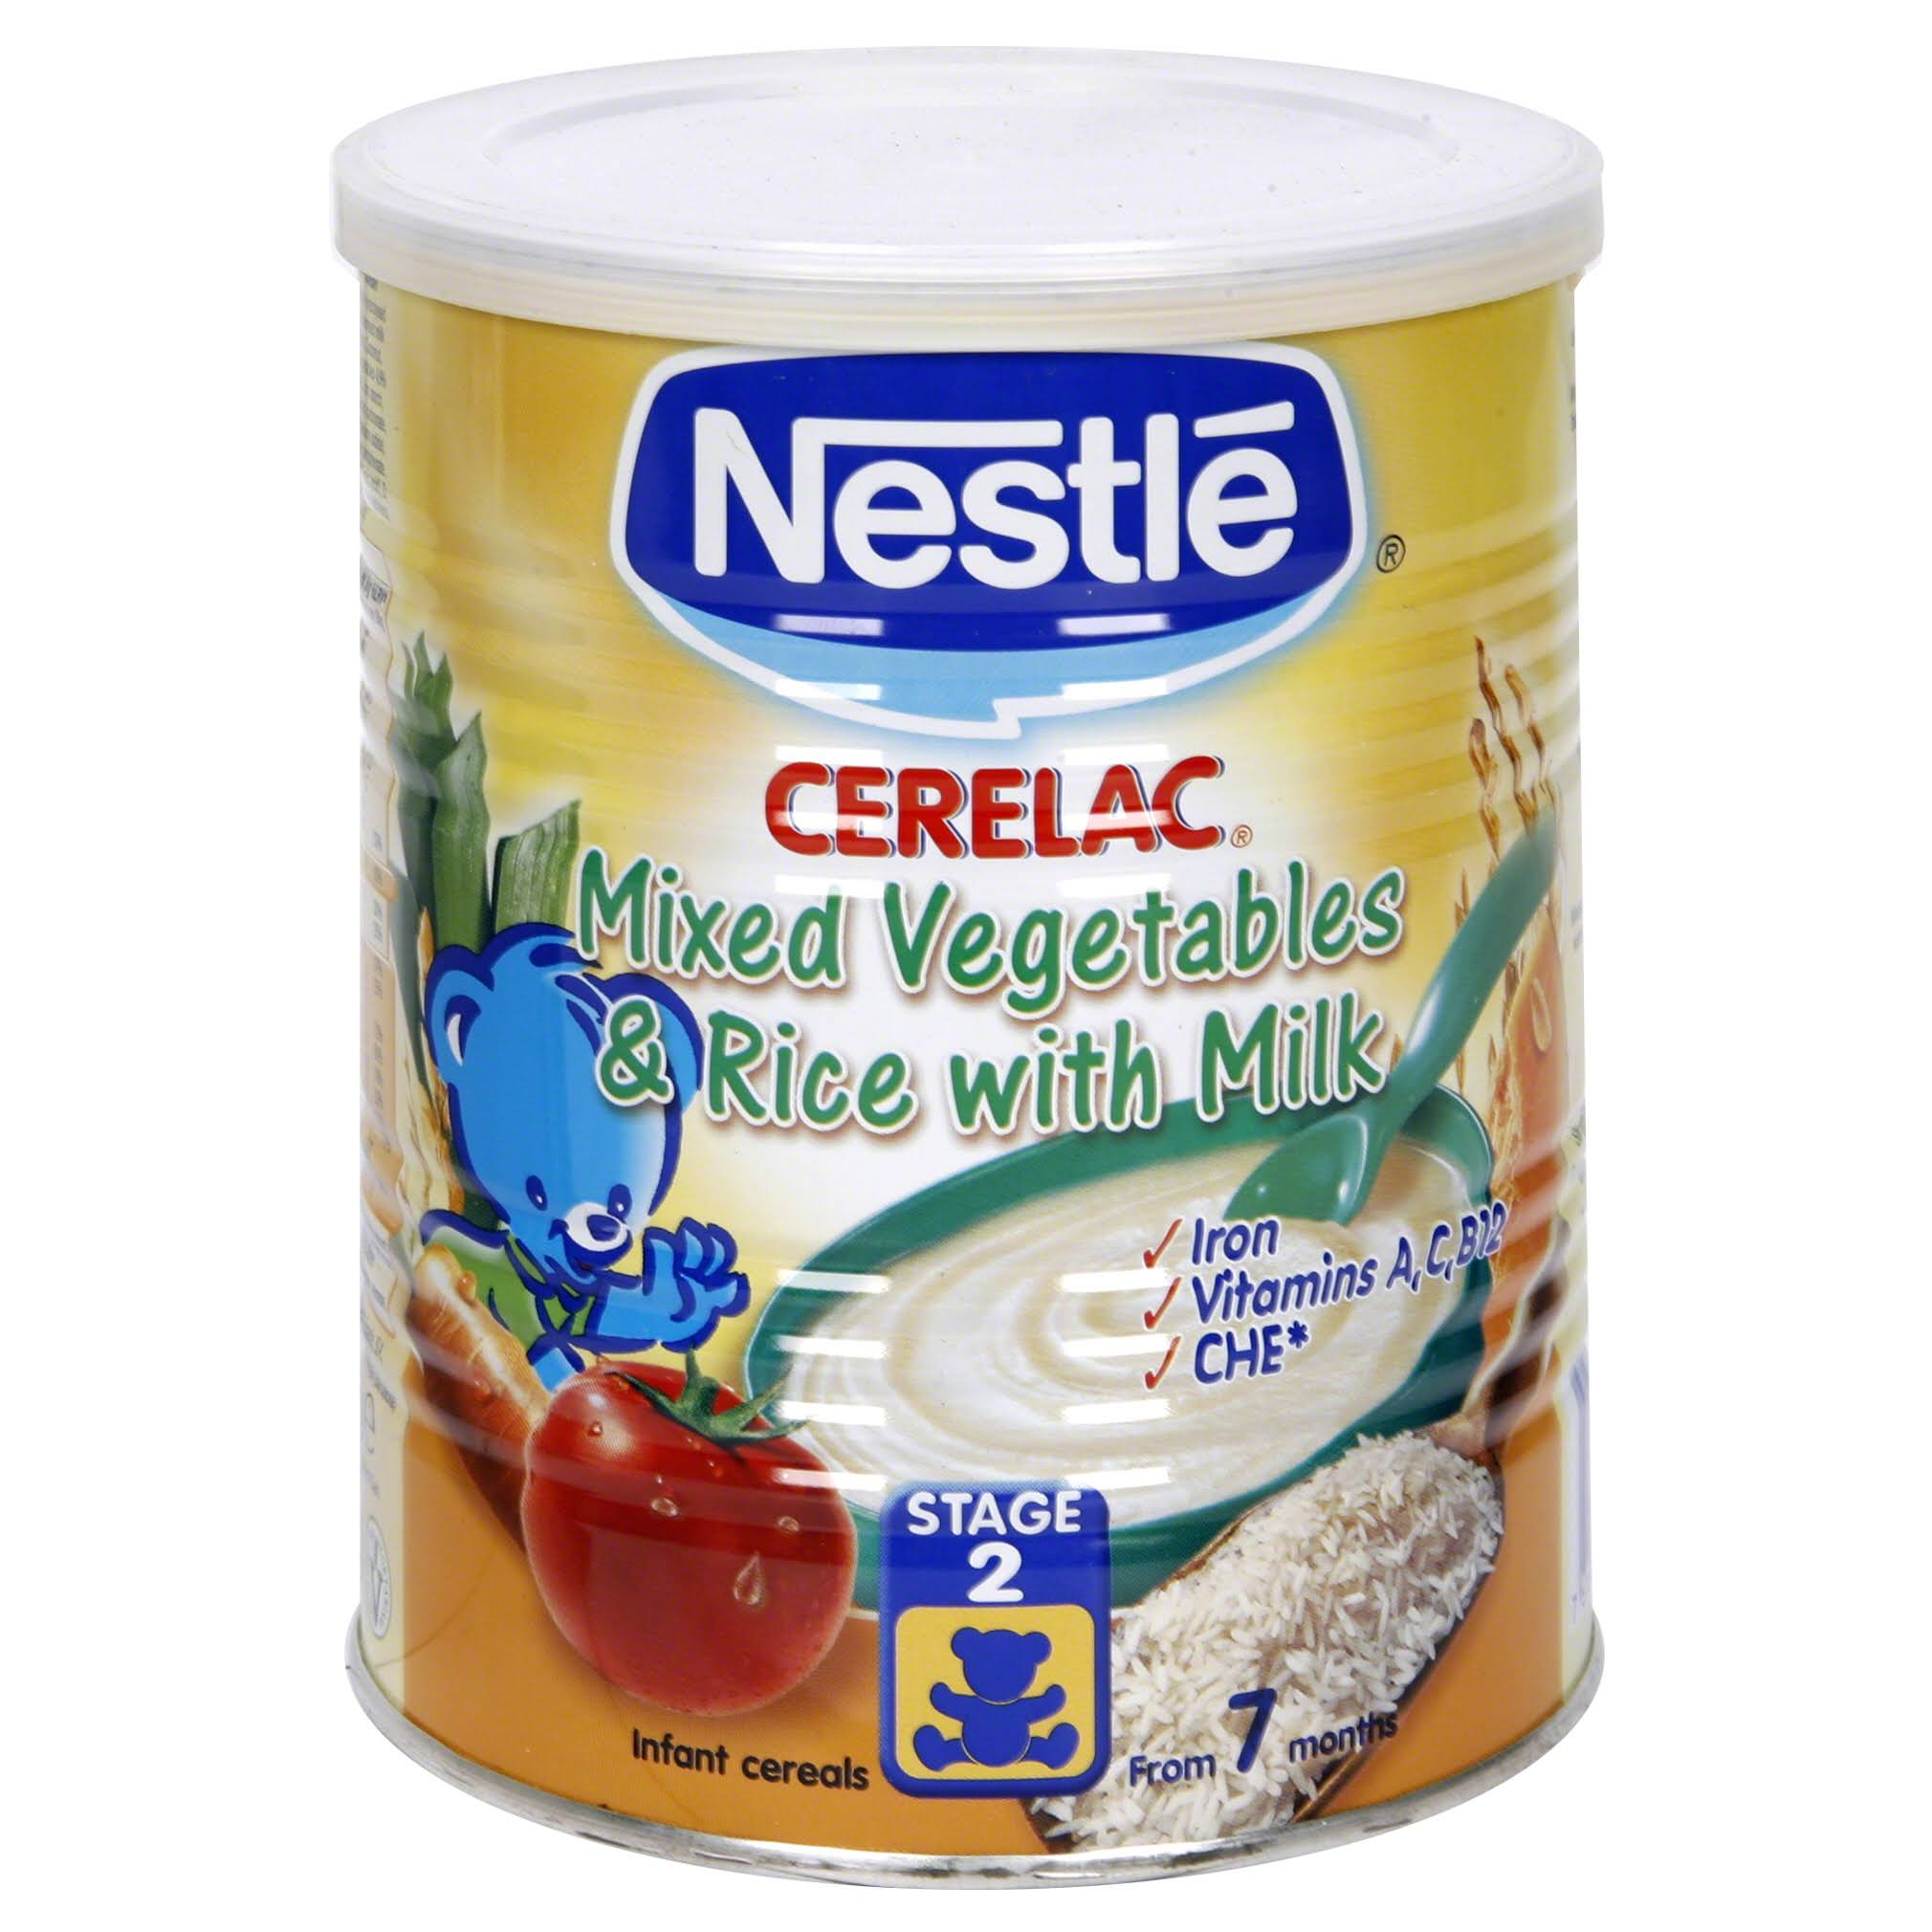 Cerelac Mixed Vegetables and Rice with Milk - 6 Months, 400g